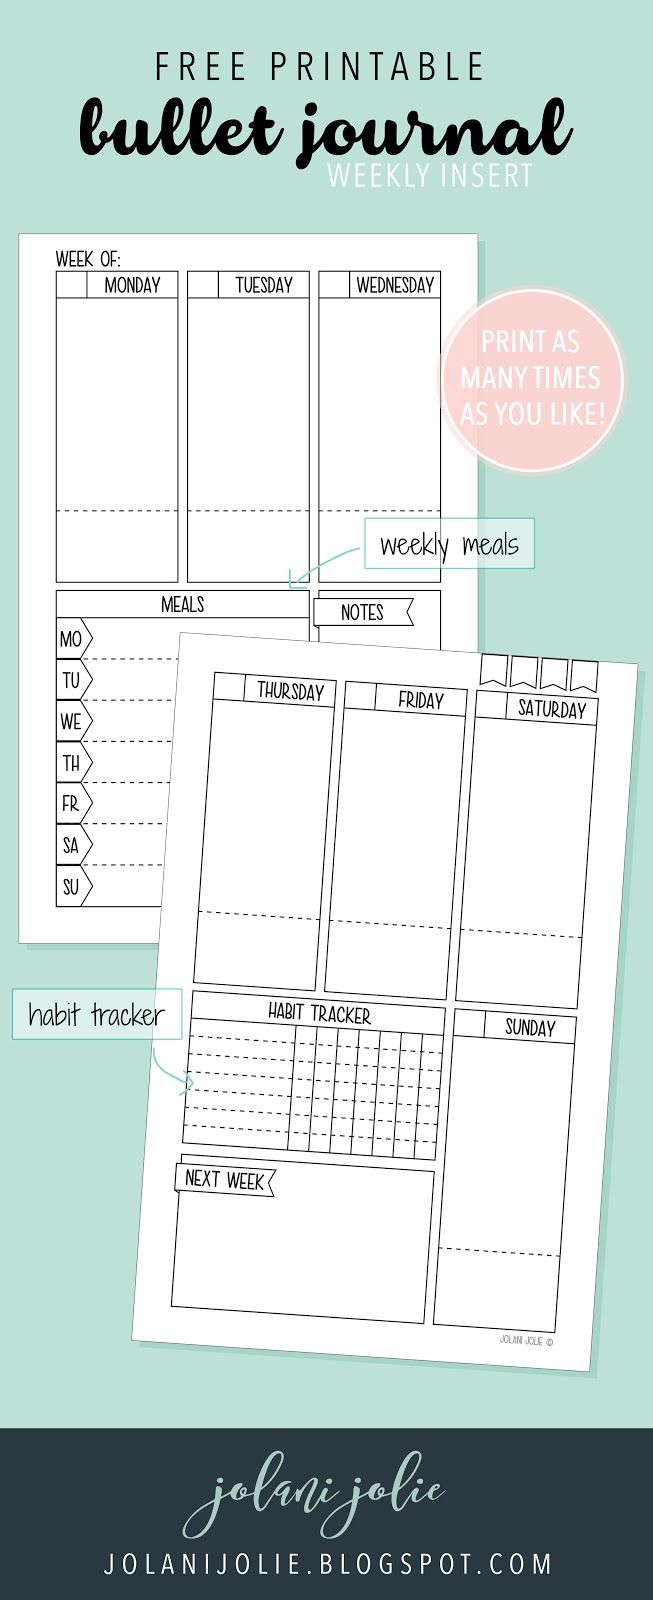 Free Printable: Bullet Journal on Two Pages - Jolani Jolie